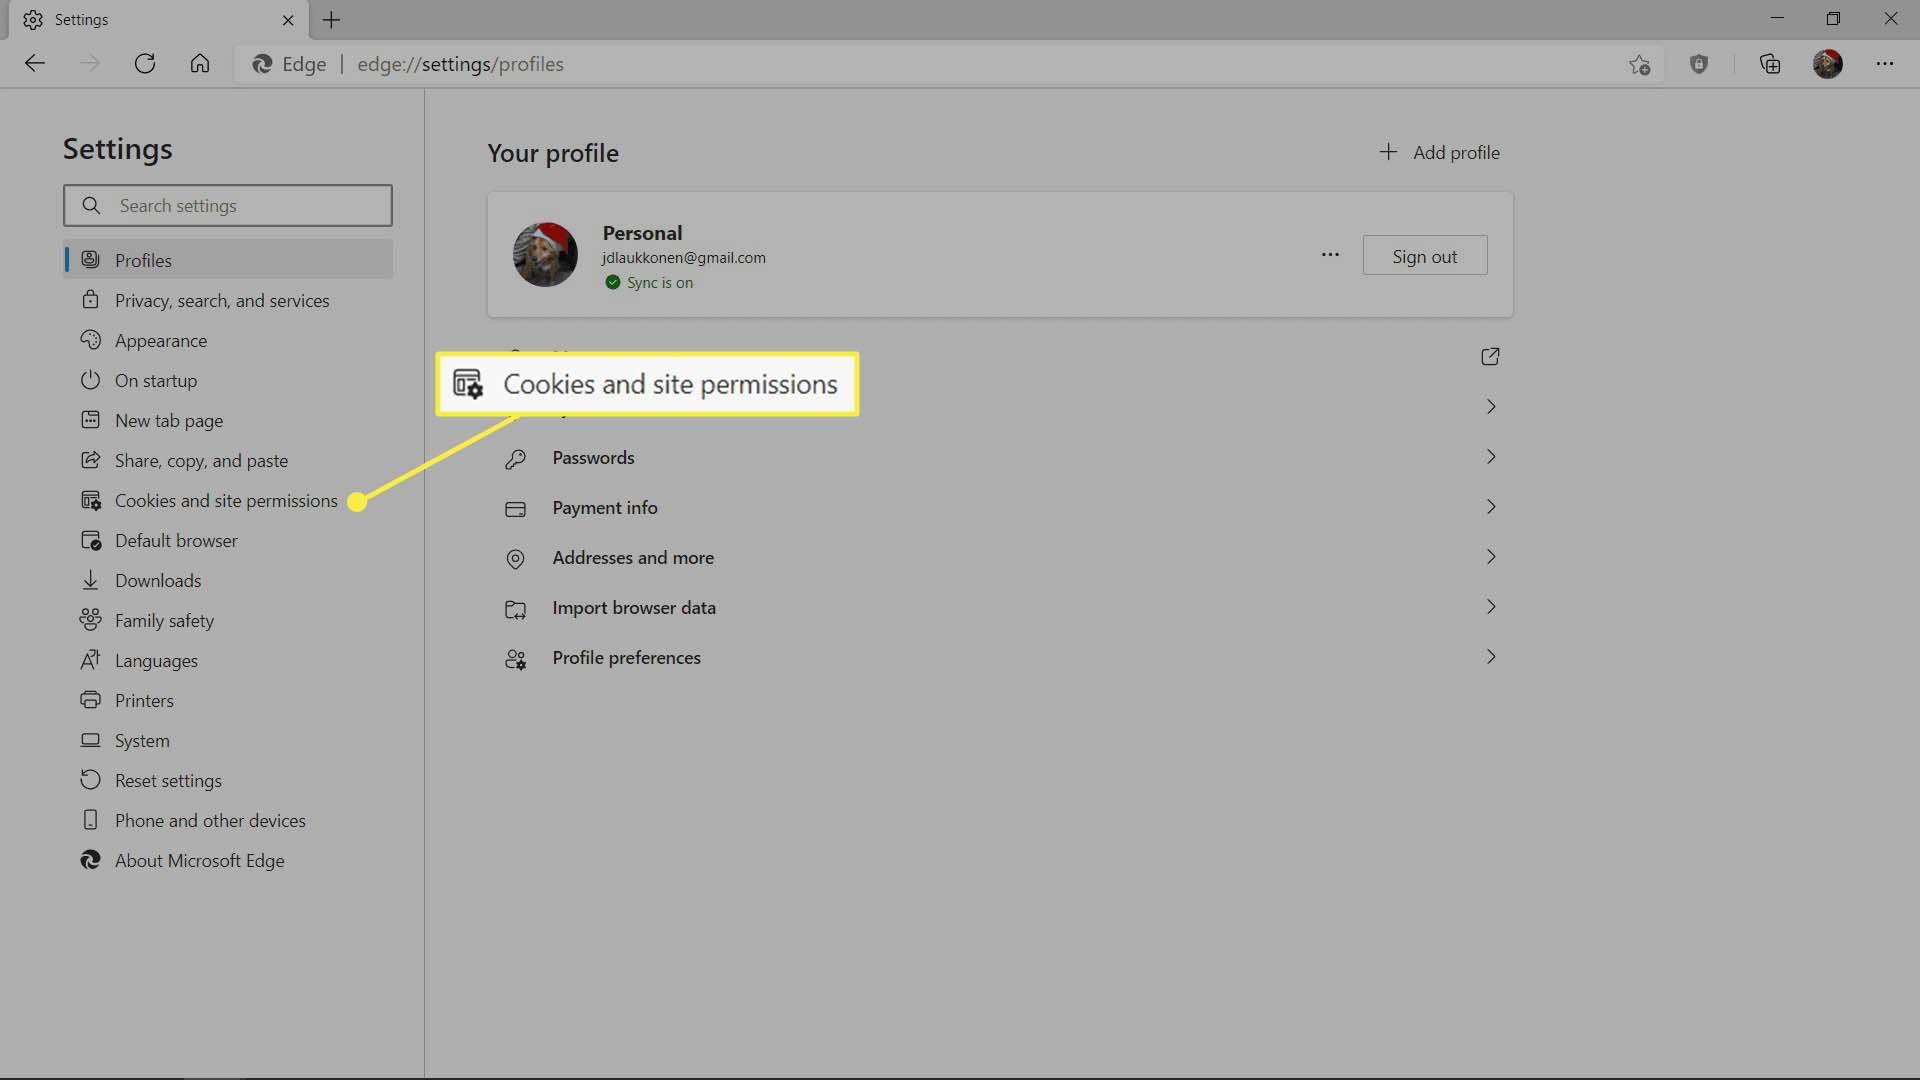 The Cookies and site permissions pane of settings in MS Edge.